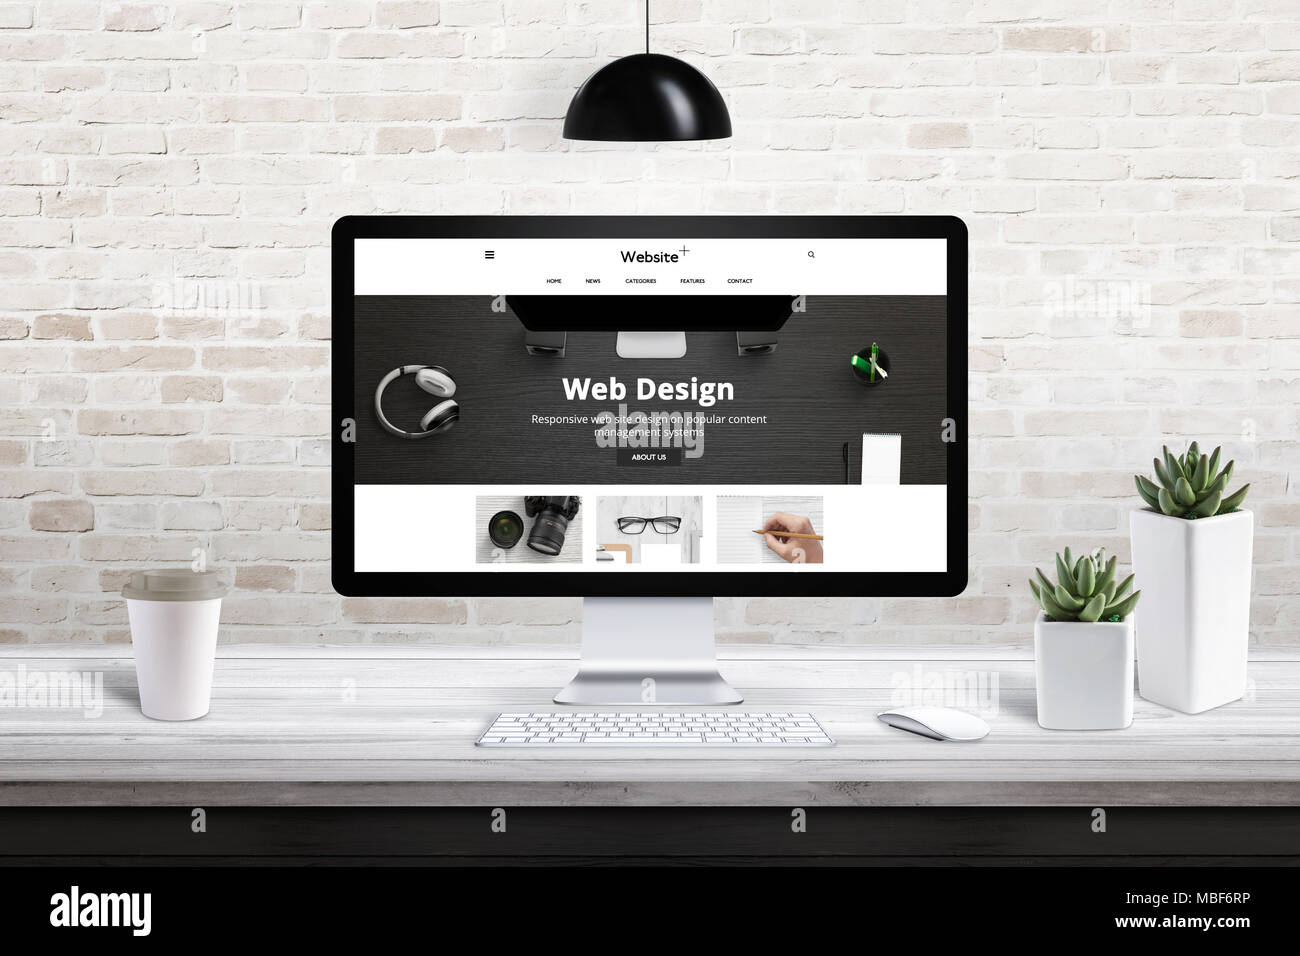 responsive web site design presentation on computer display modern